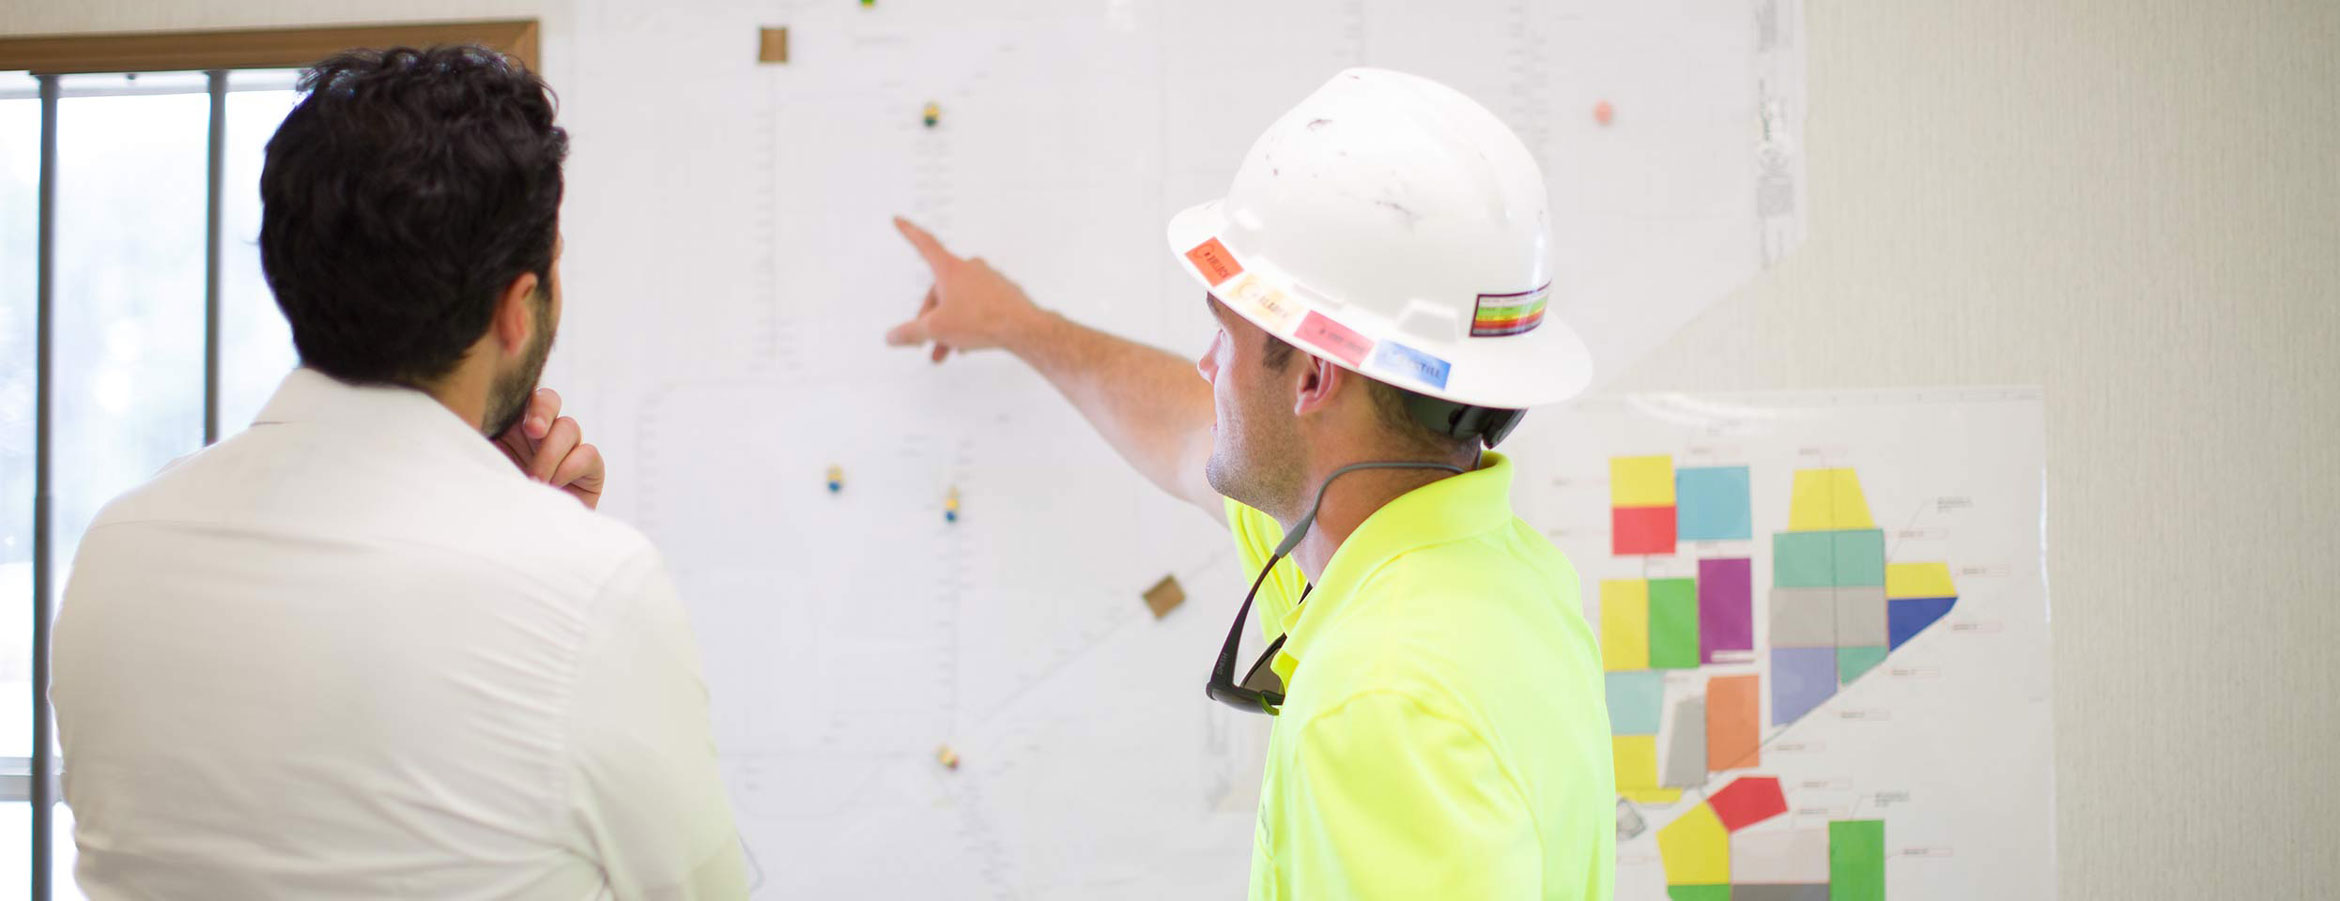 Two employees looking at plans on a wall